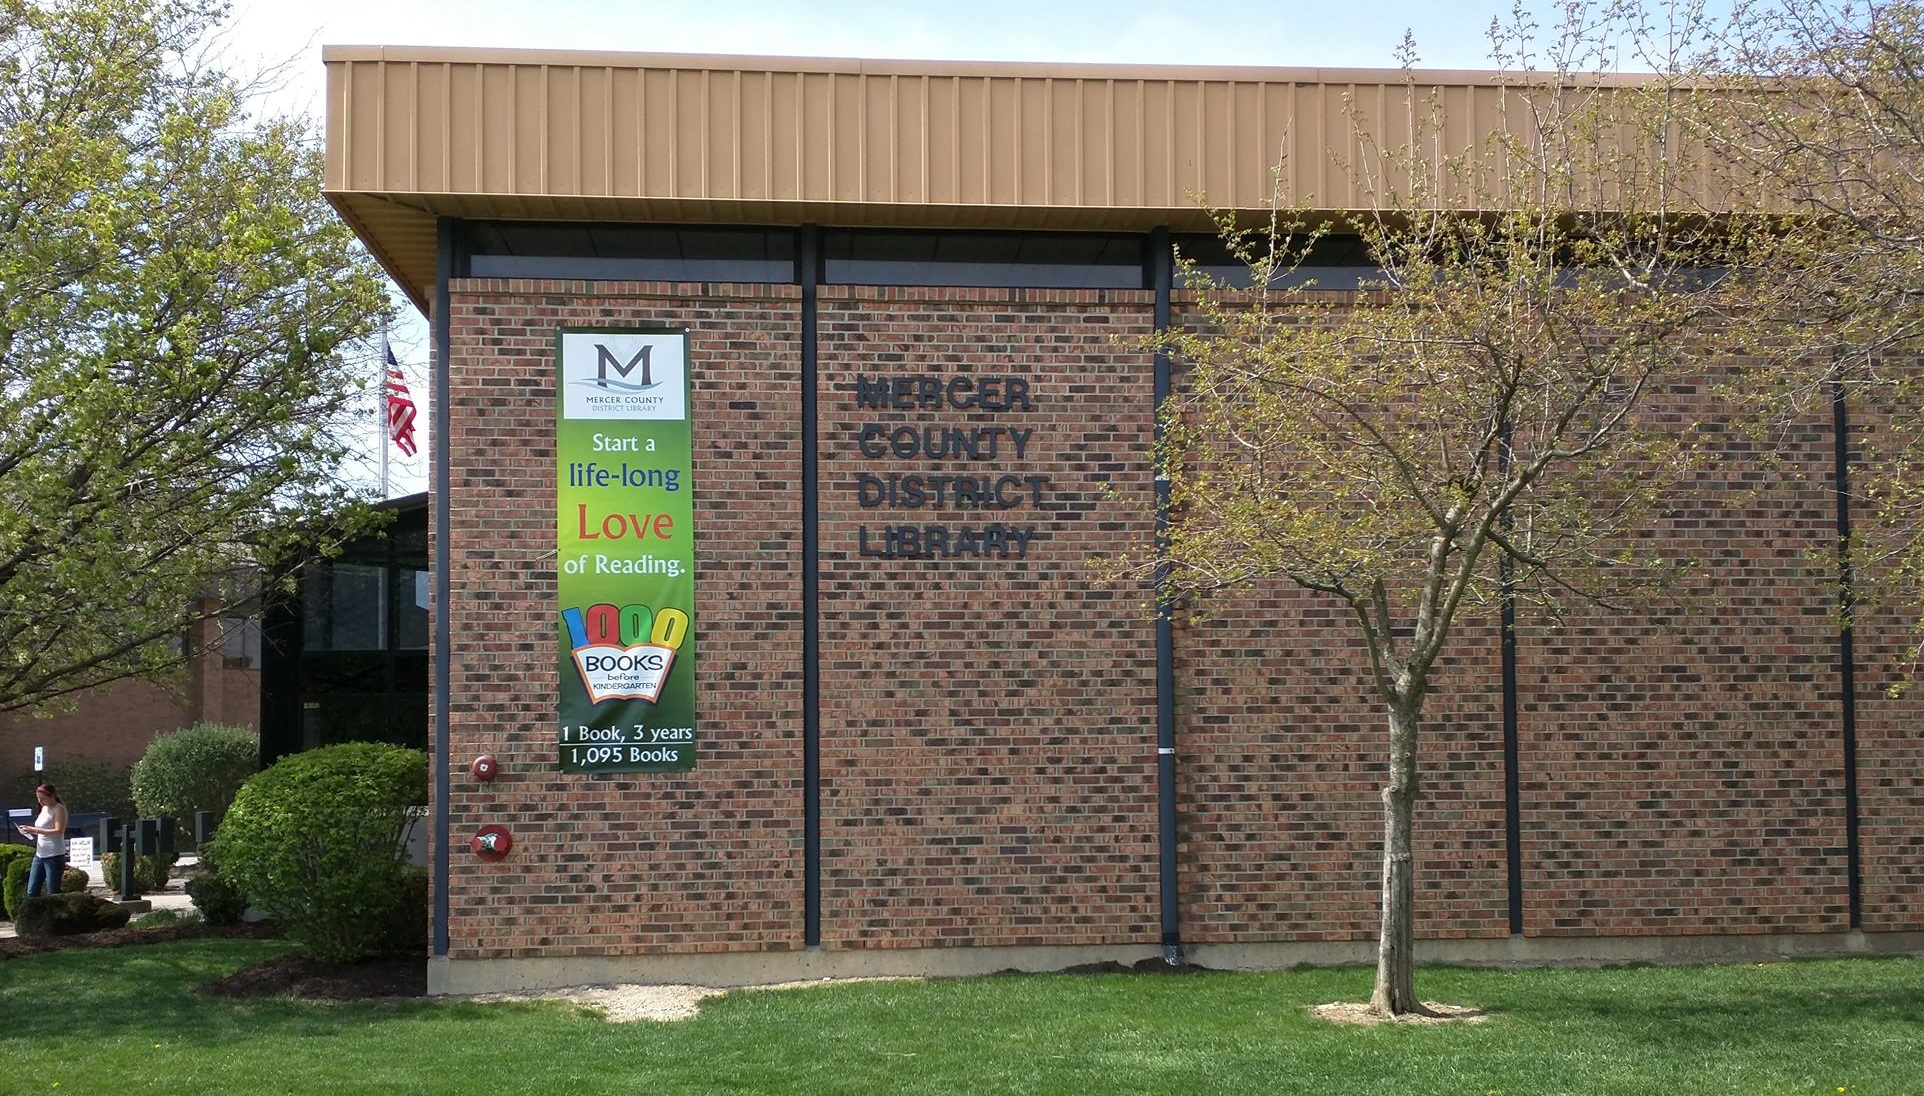 Celina Main Library | Mercer County District Library